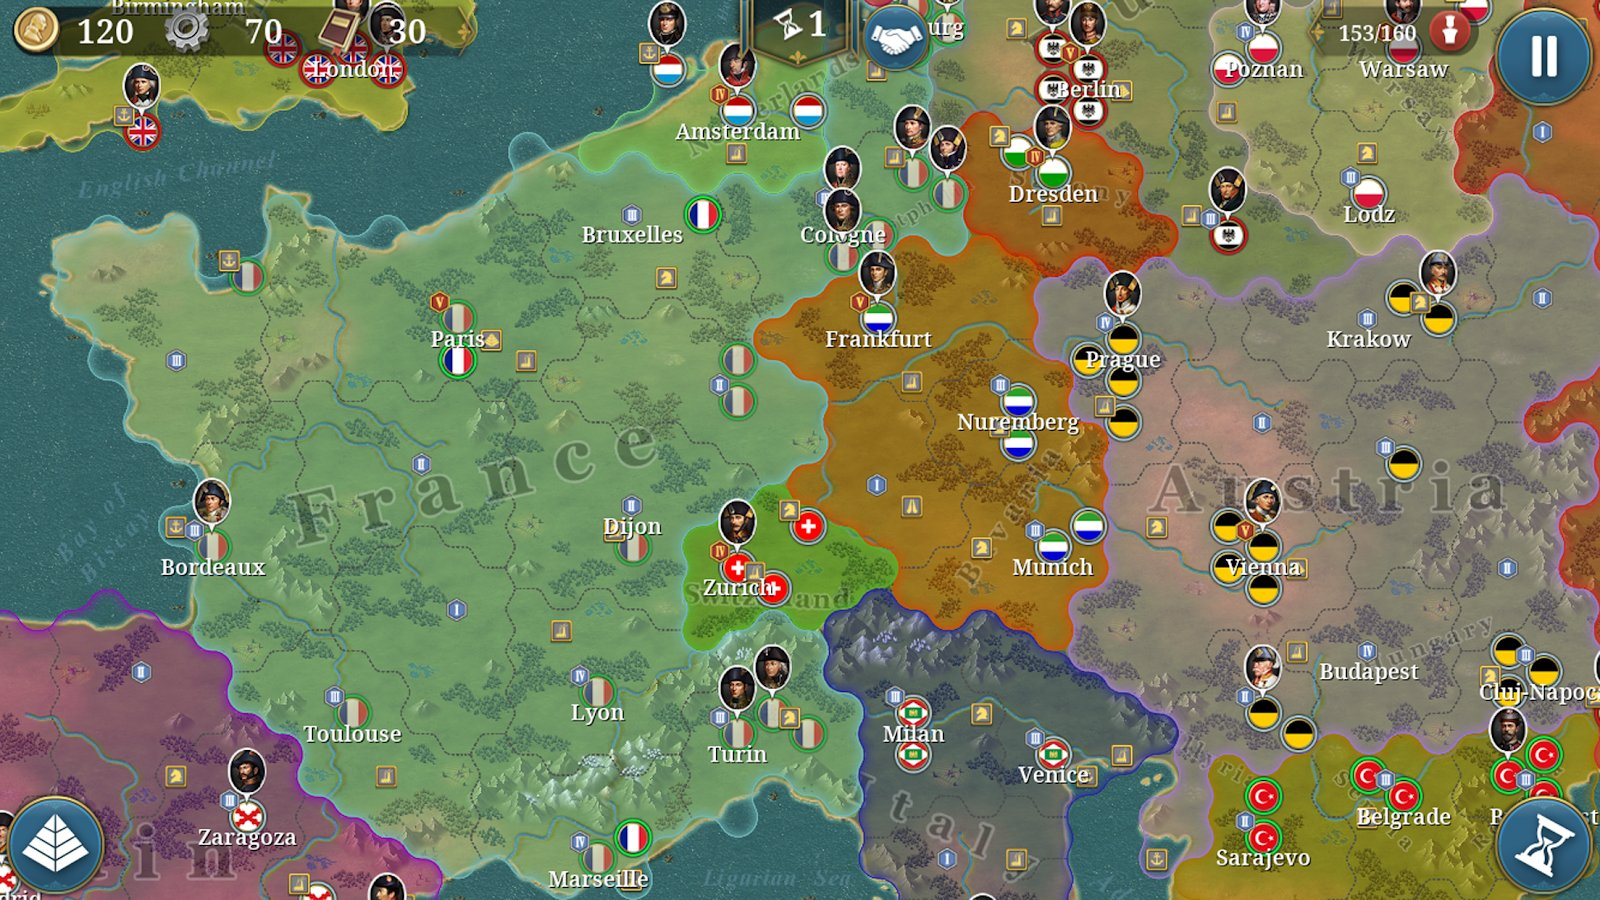 Android Giveaway of the Day - European War 6: 1804